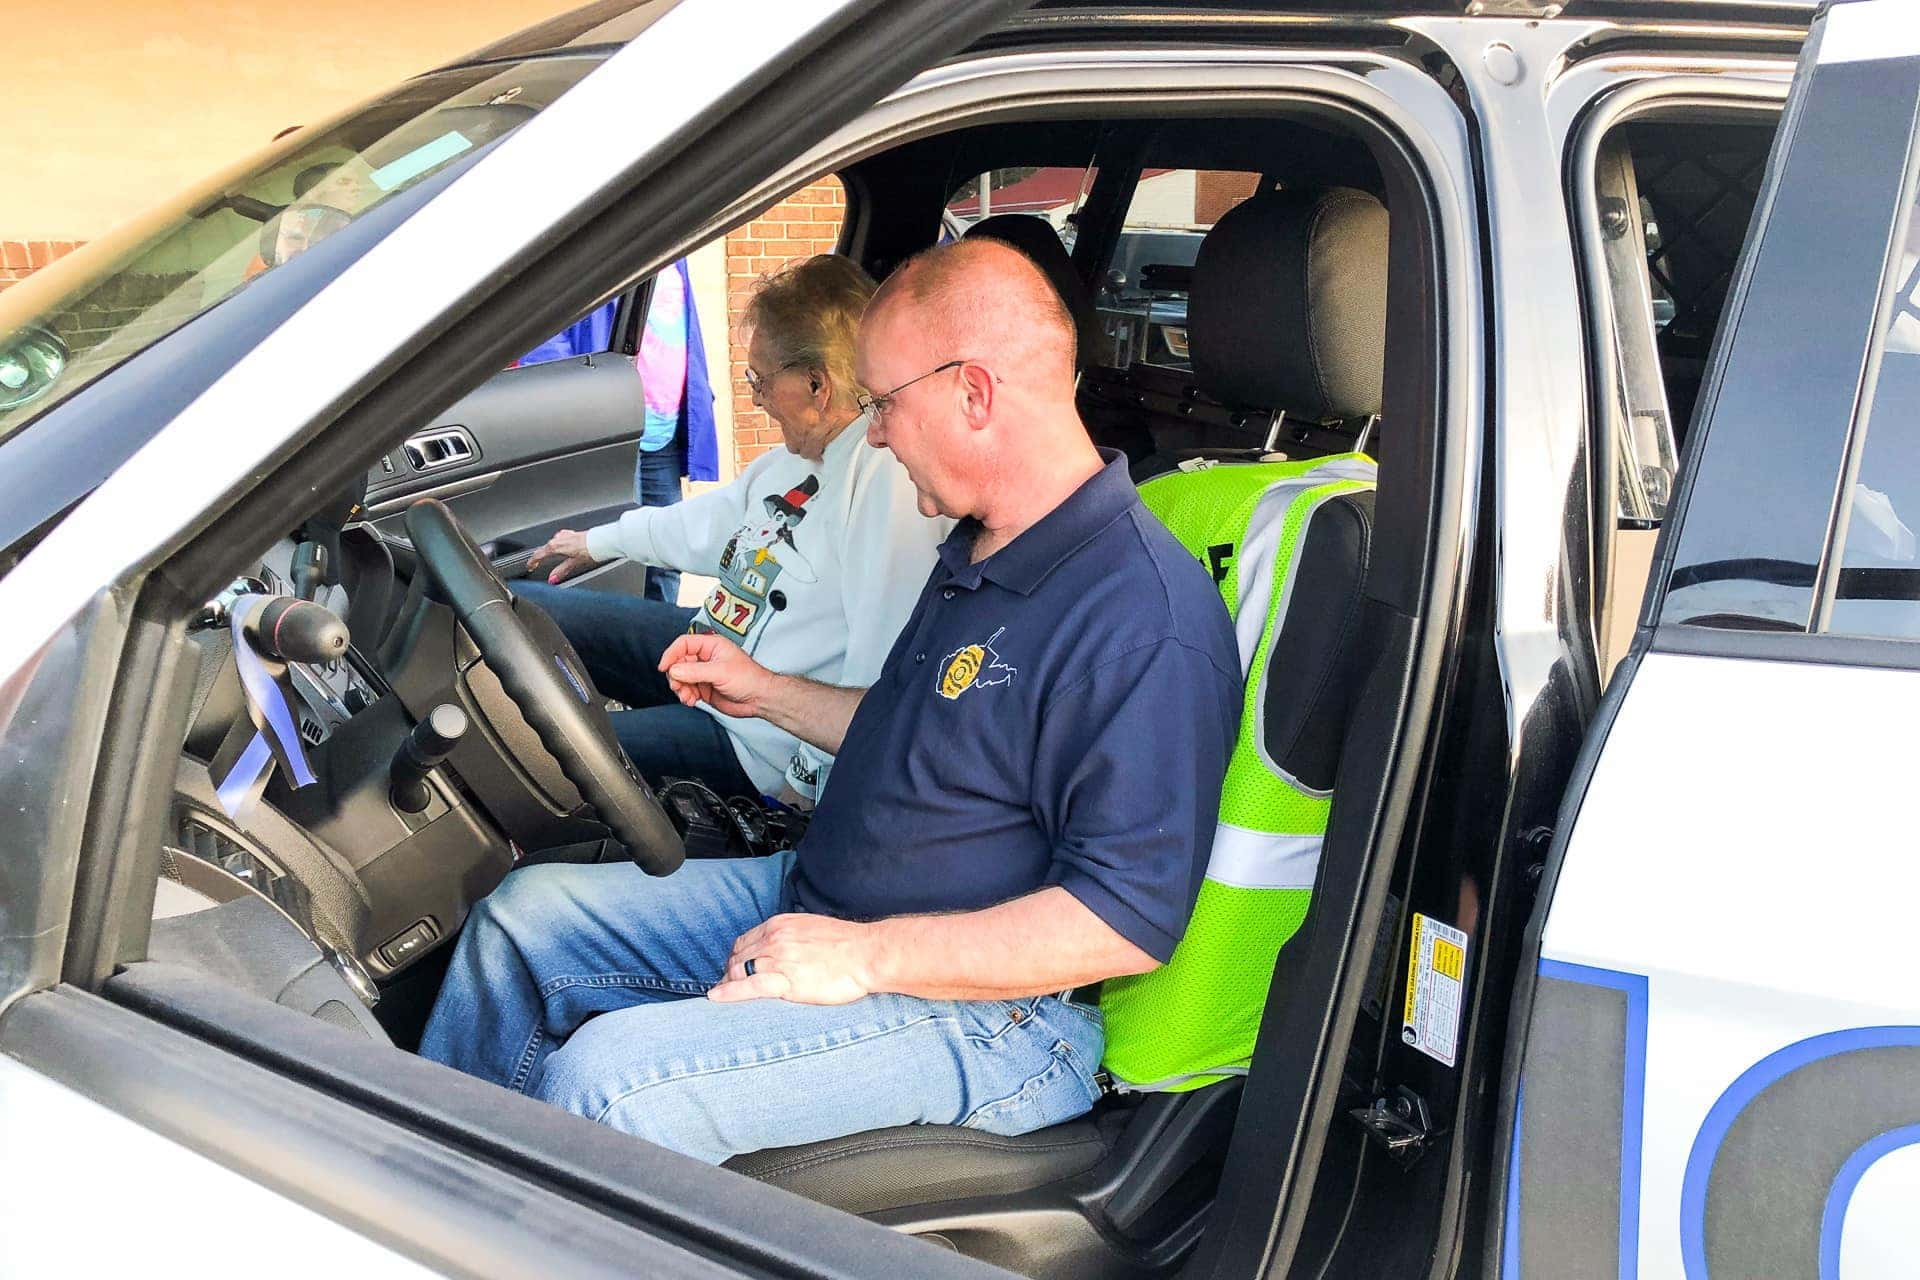 Nine weeks in the life of a city police officer: Participants peek inside police cruisers, Youth Academy announced